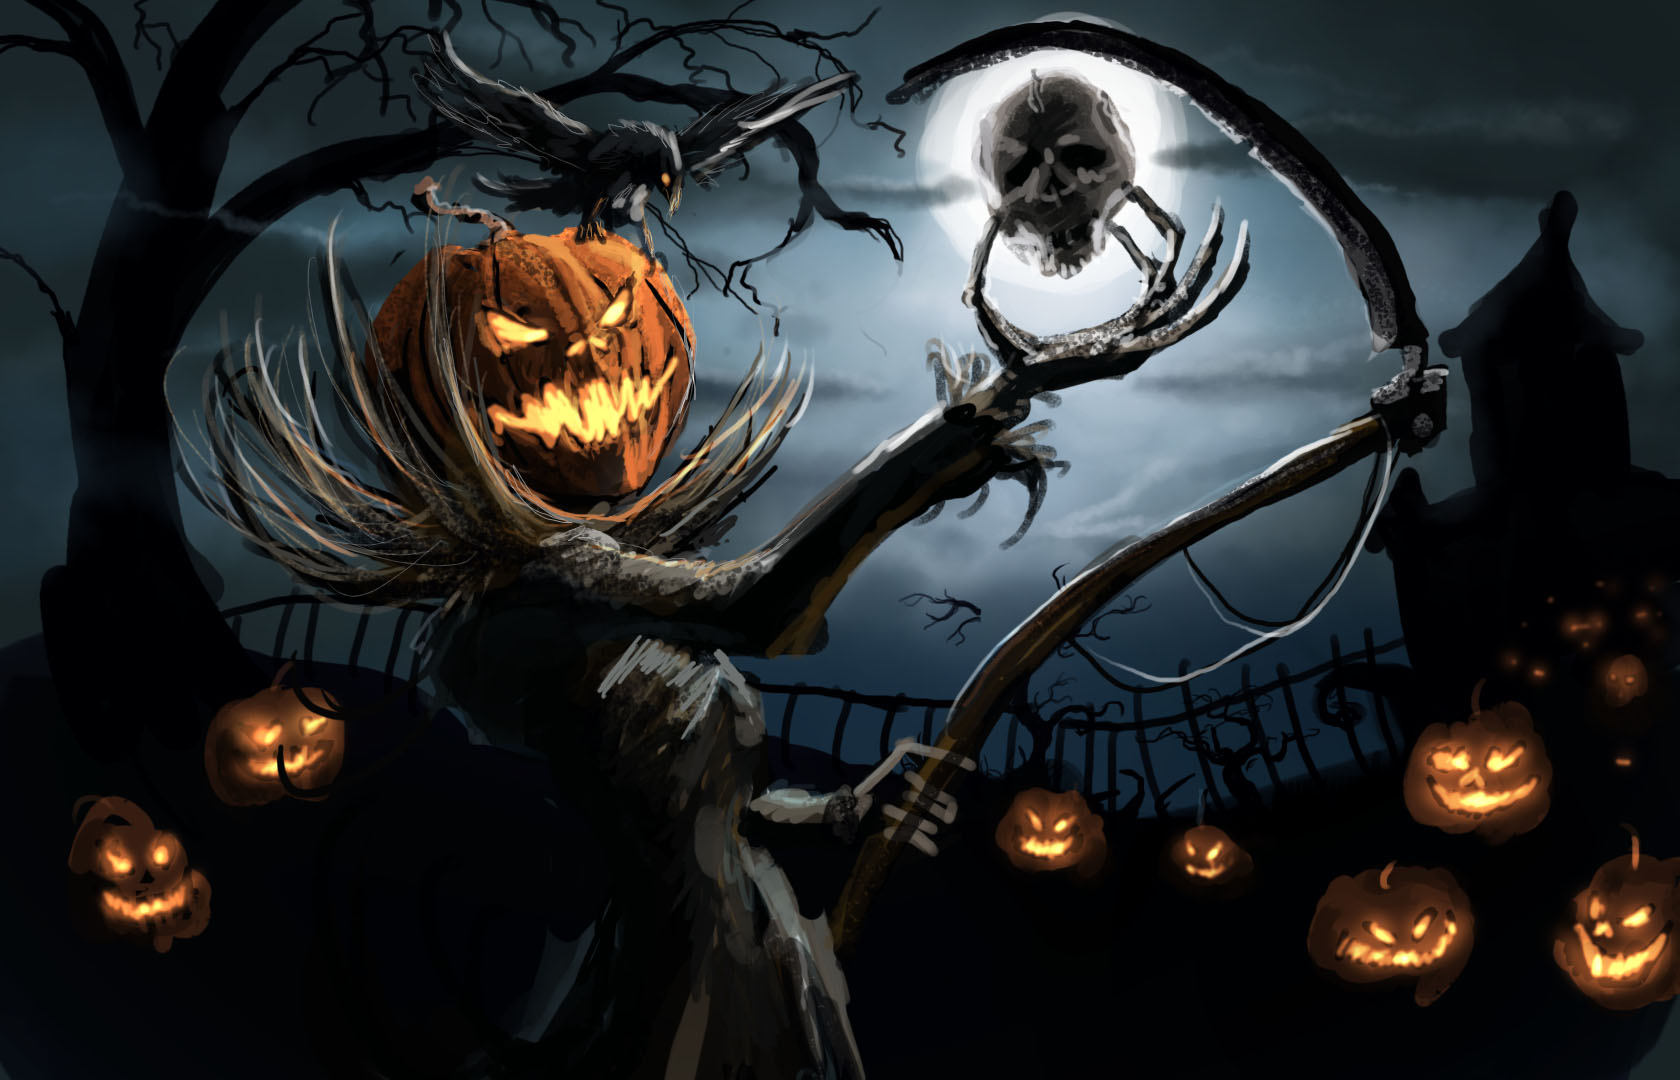 Scary Halloween Wallpapers Free